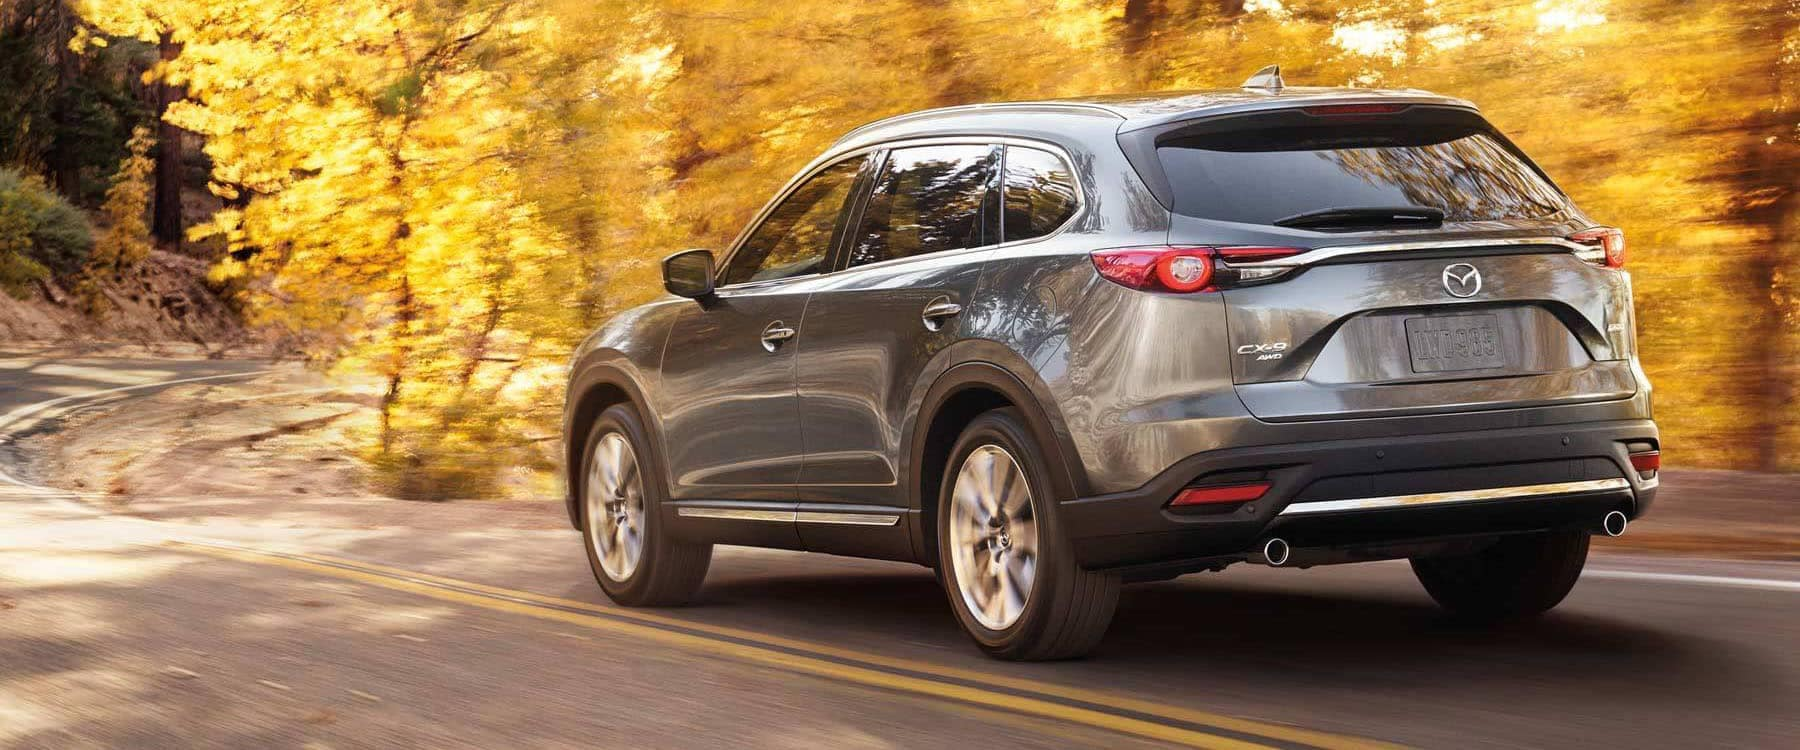 2018 Mazda CX-9 AWD Driving Through Curved Wooded Roads